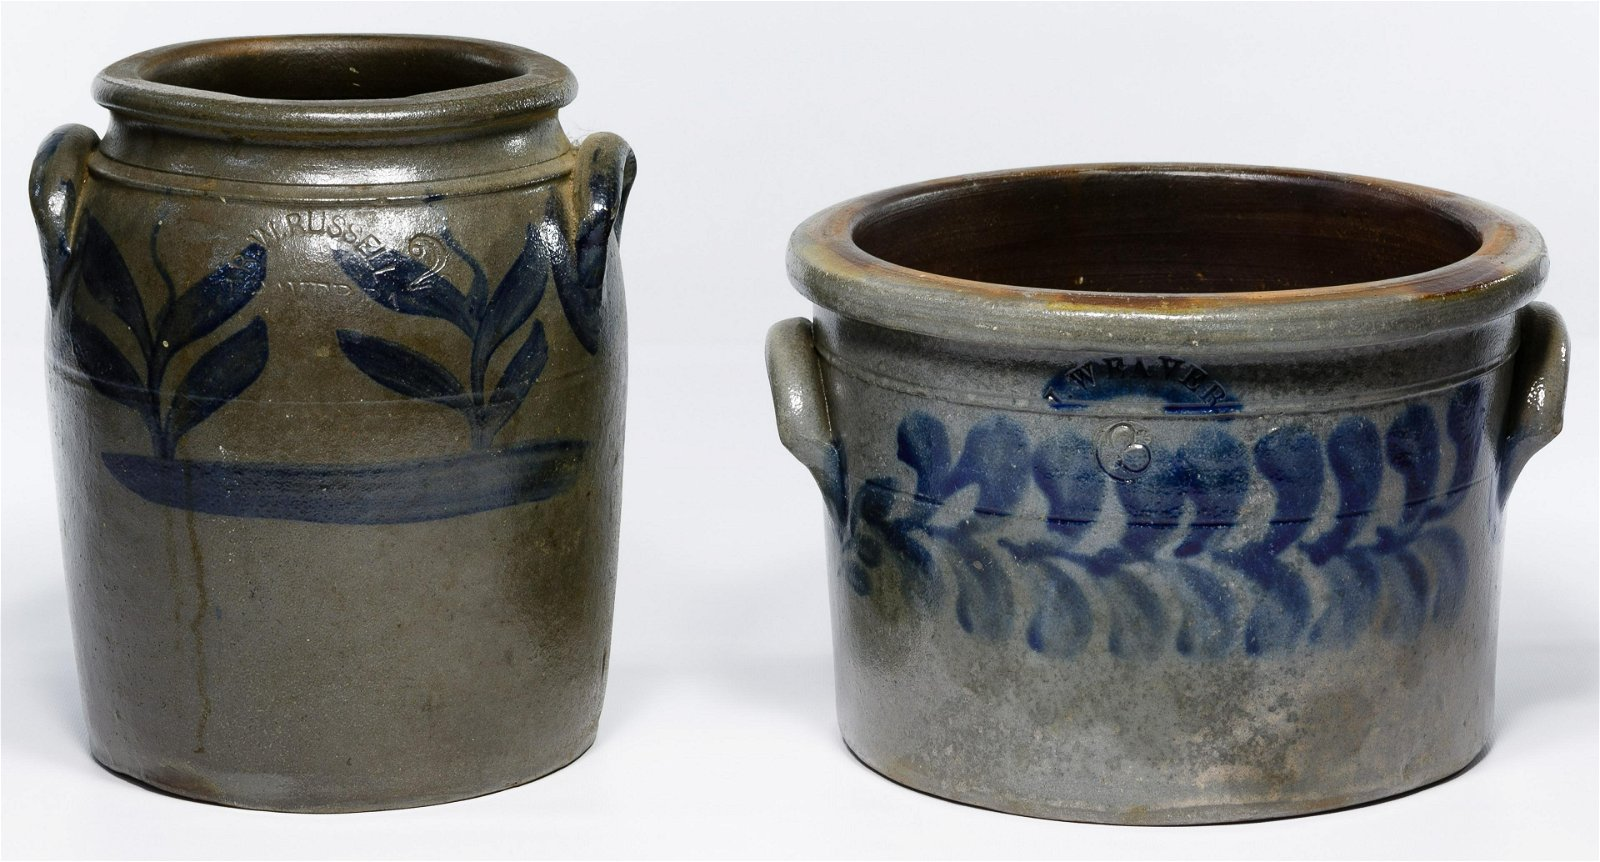 R.W. Russell and Weaver Stoneware Crocks